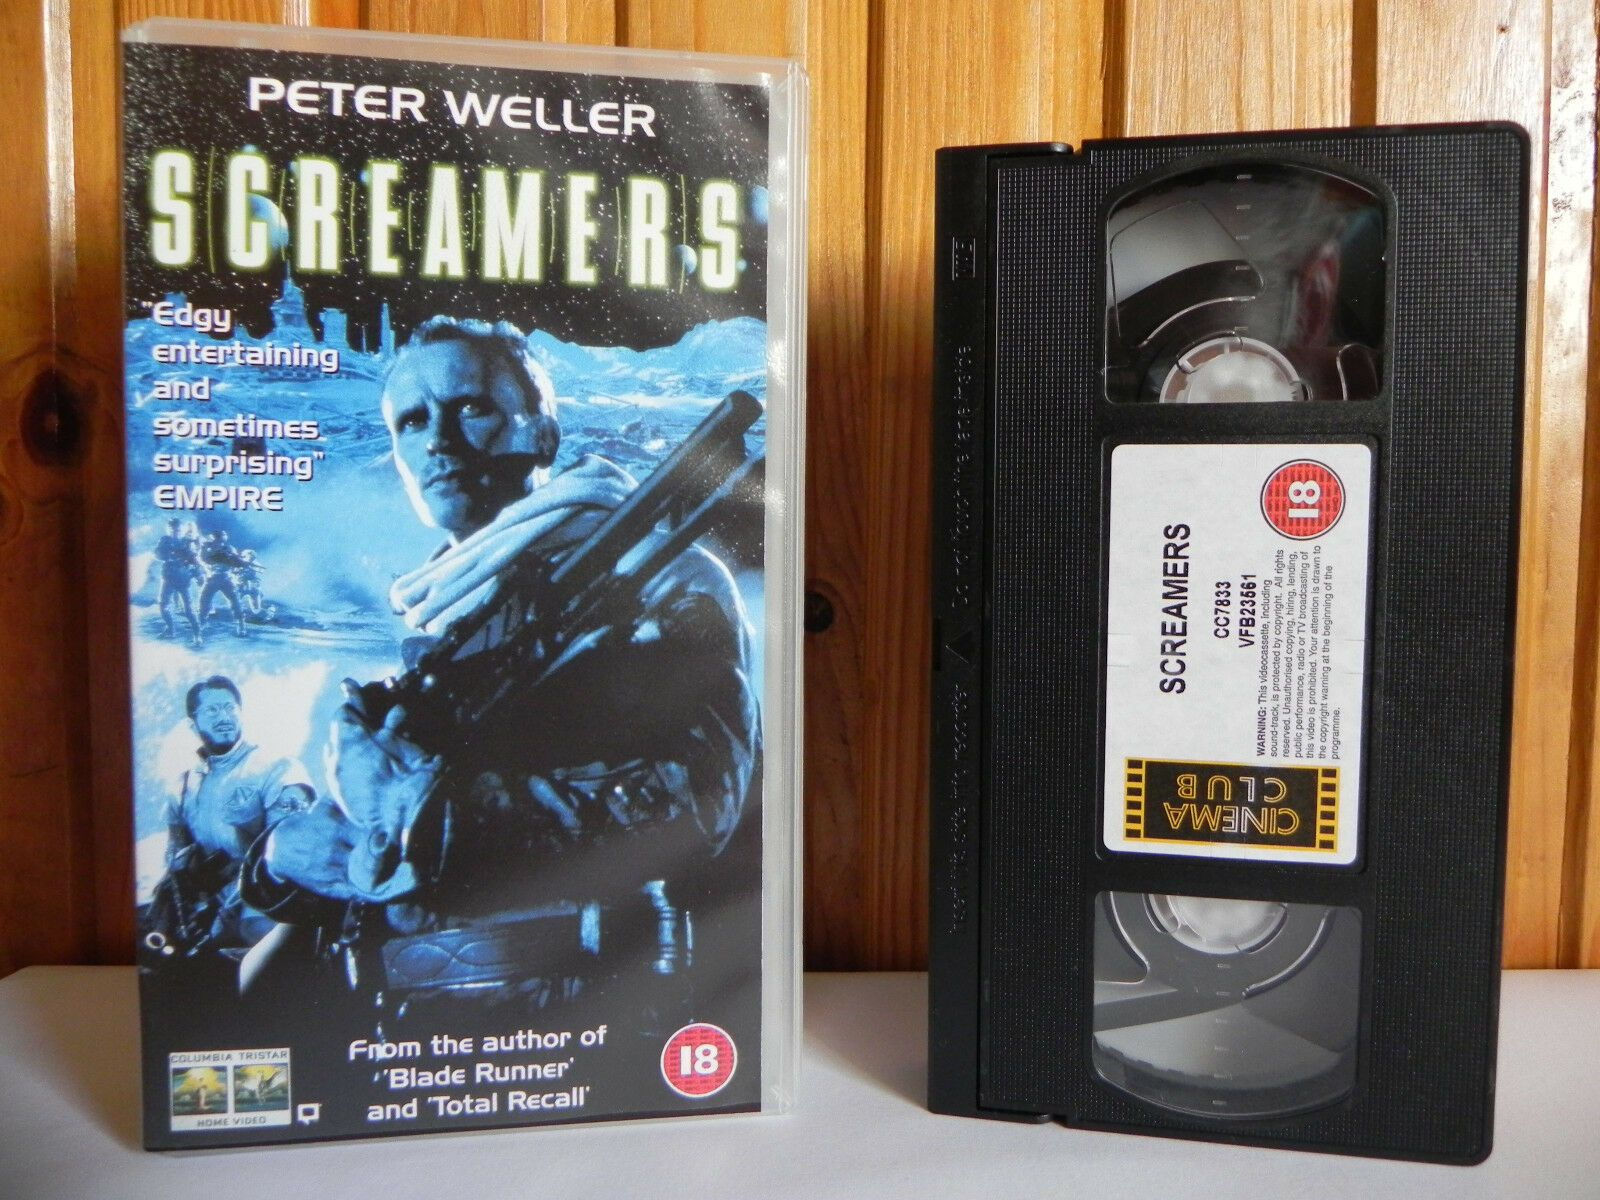 Screamers - Columbia Tristar - Sci-Fi - Cert (18) - Peter Weller - Pal VHS